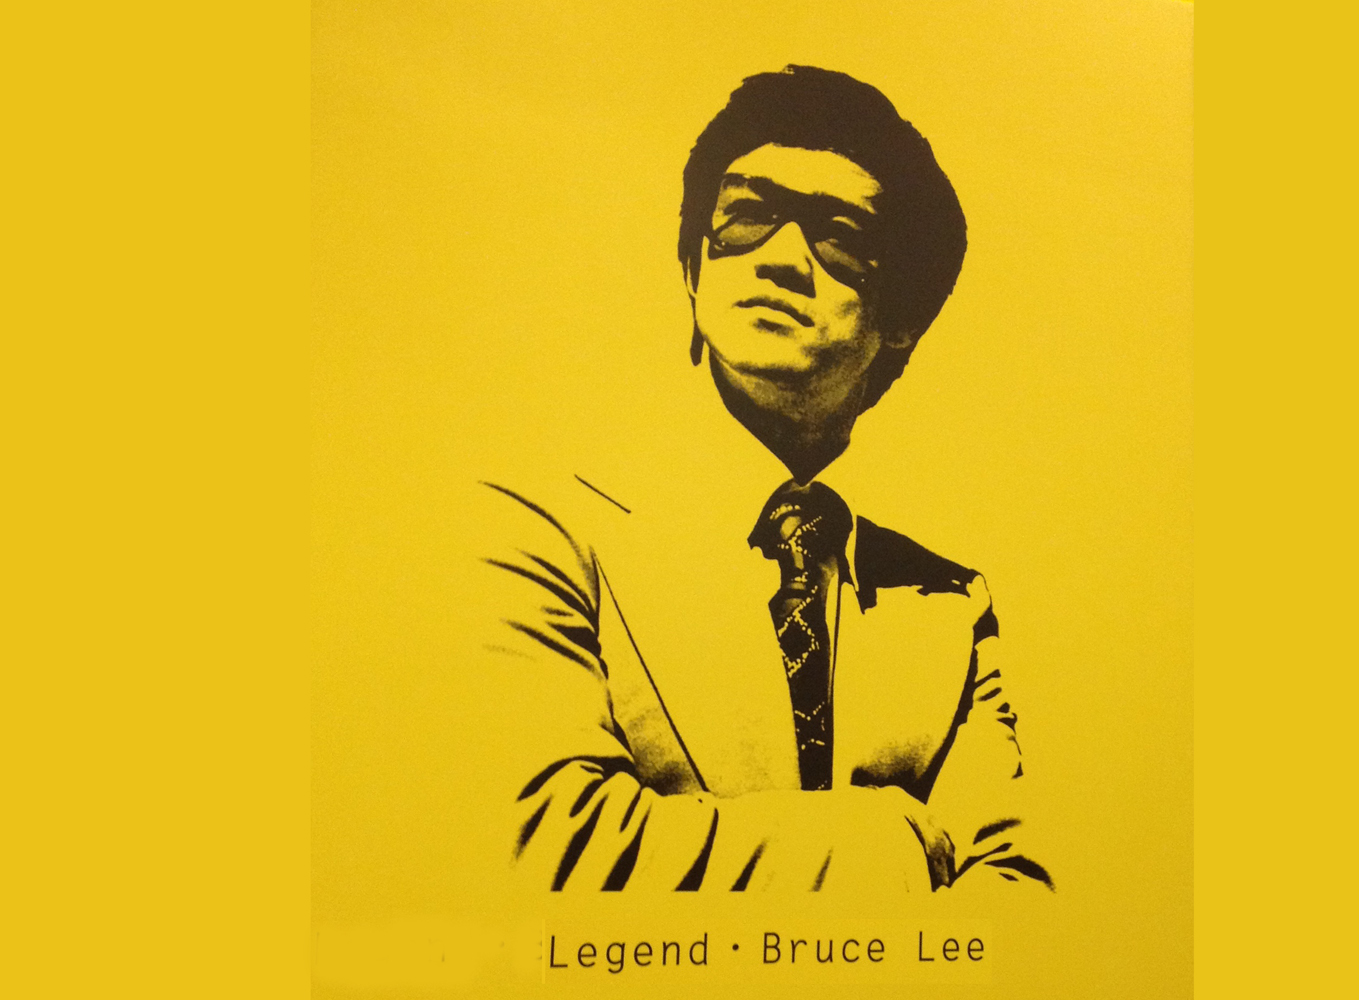 bruce-lee-exhibition-museum-hong-kong-heritage-memorial-exhibit-hk